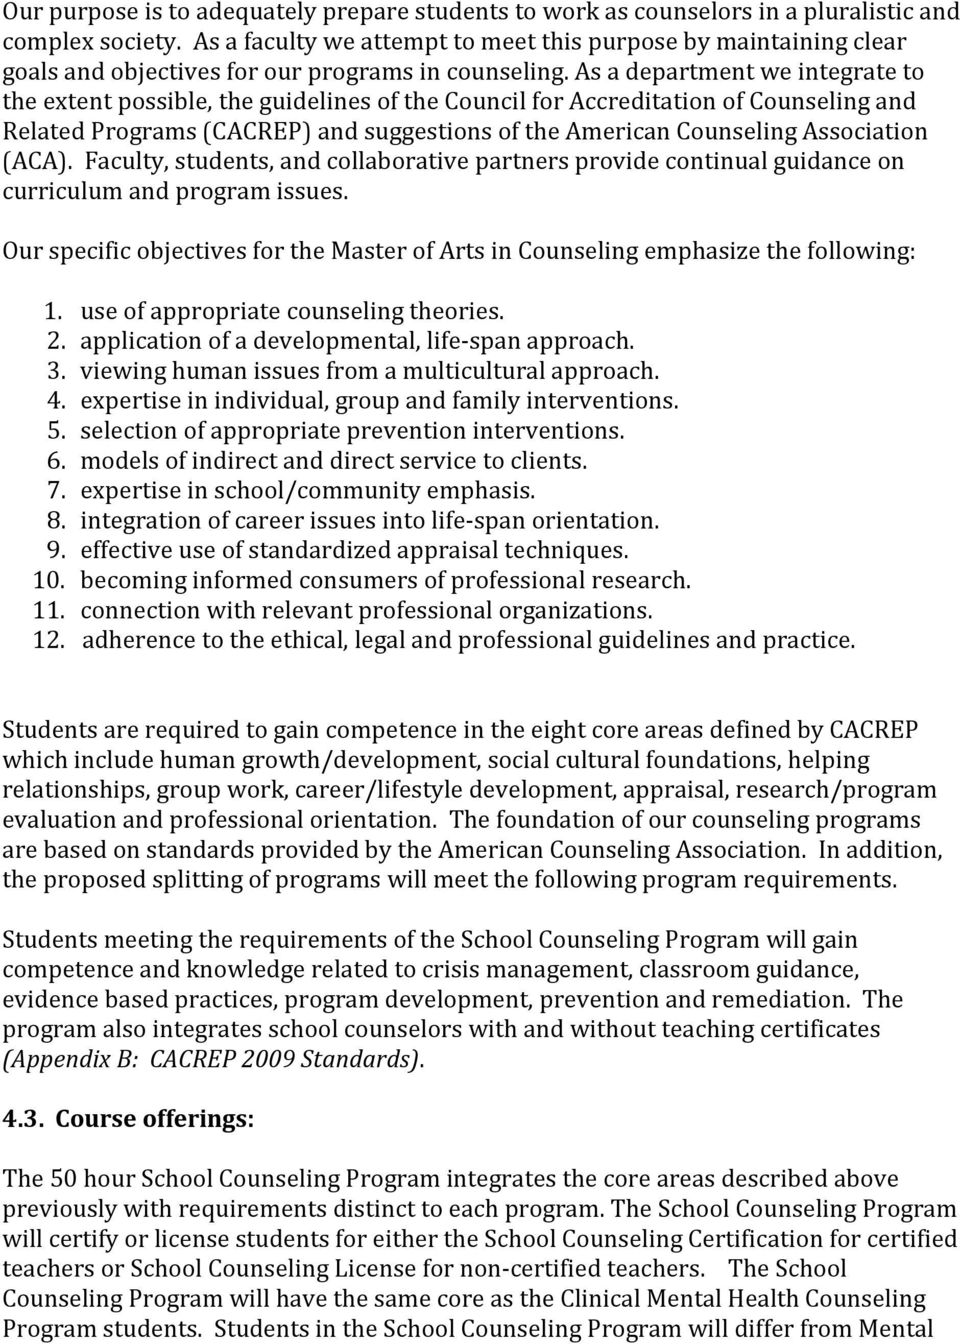 As a department we integrate to the extent possible, the guidelines of the Council for Accreditation of Counseling and Related Programs (CACREP) and suggestions of the American Counseling Association